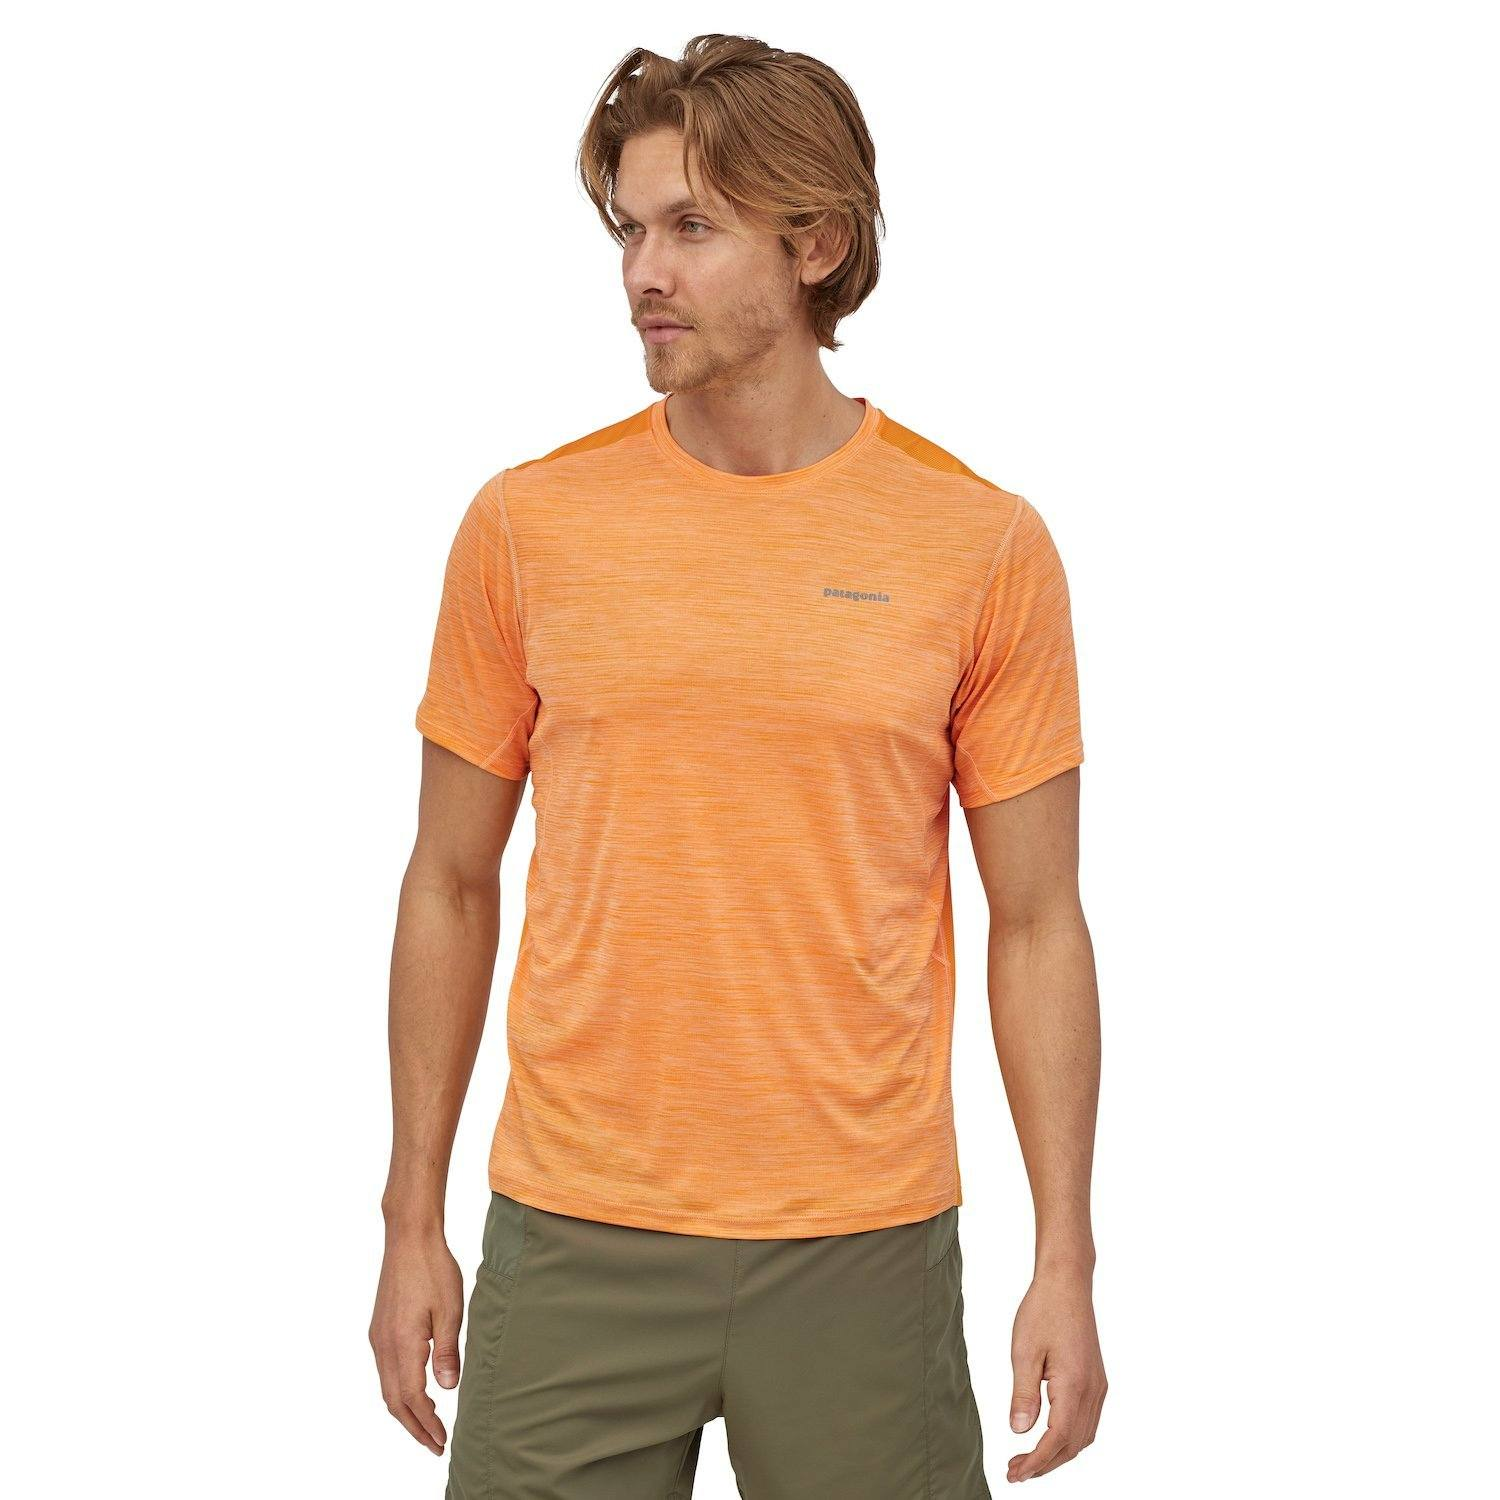 Patagonia - Airchaser Shirt - Recycled Polyester - Weekendbee - sustainable sportswear